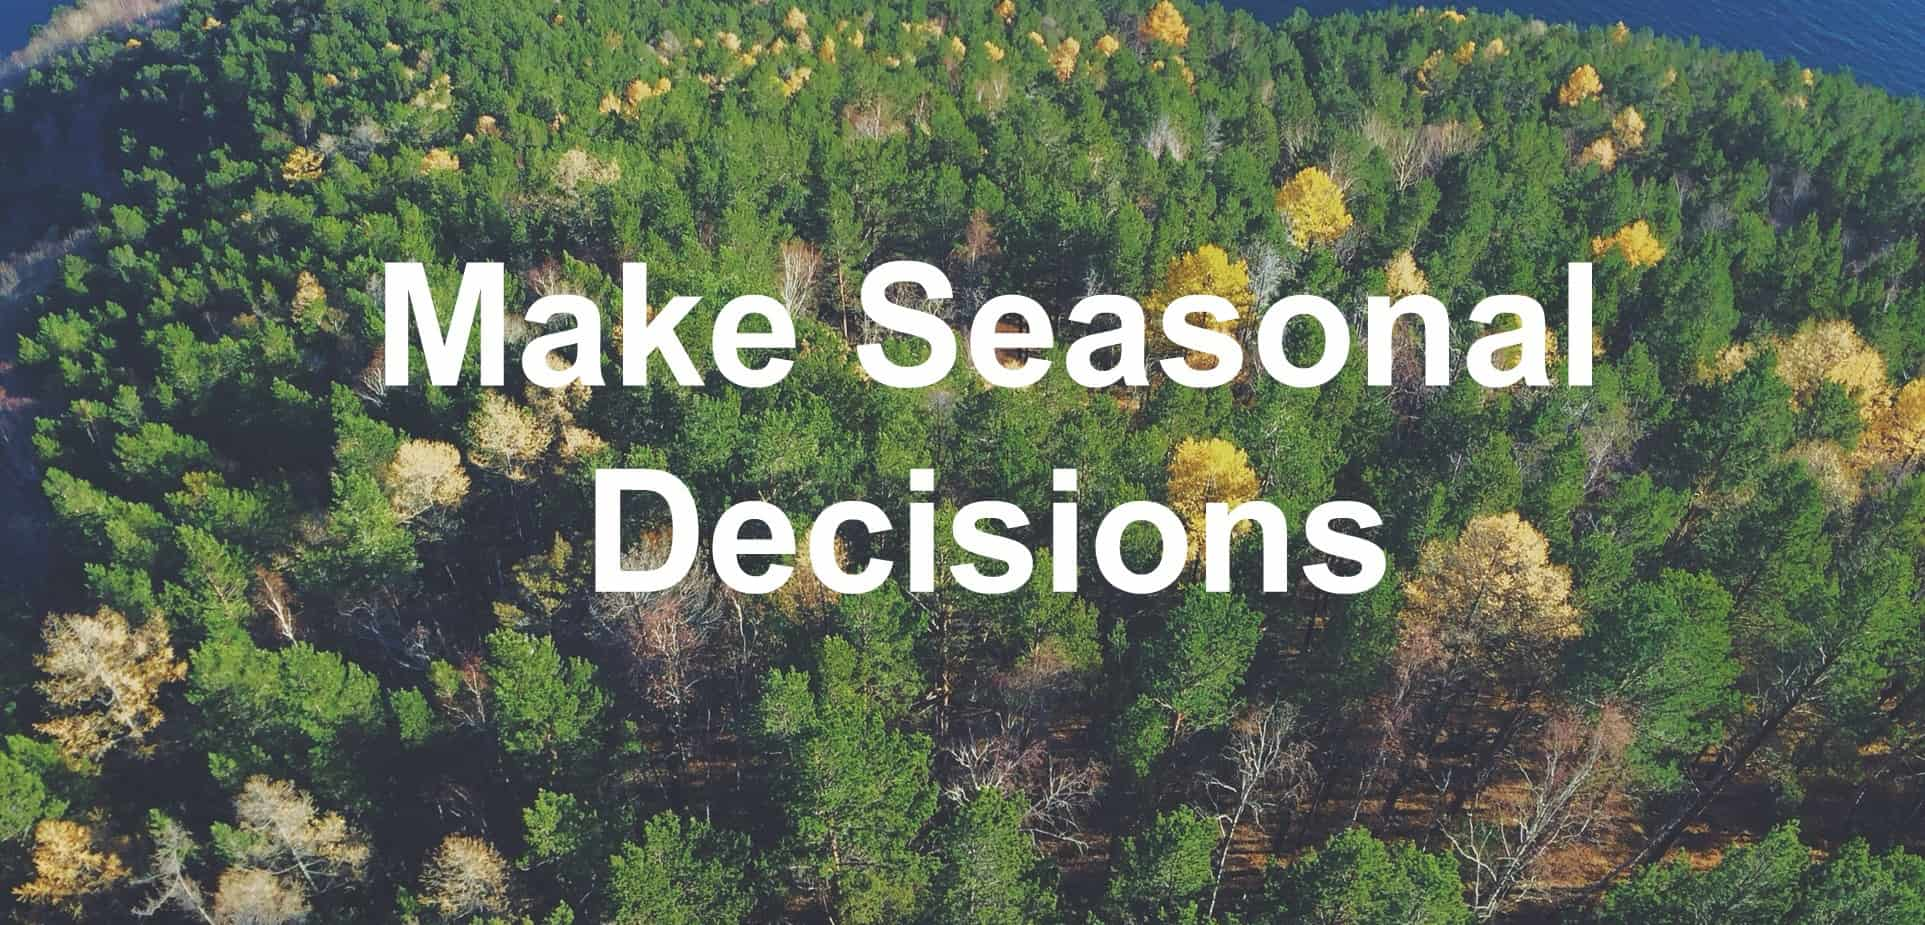 We have to make decisions based on the seasons of our lives